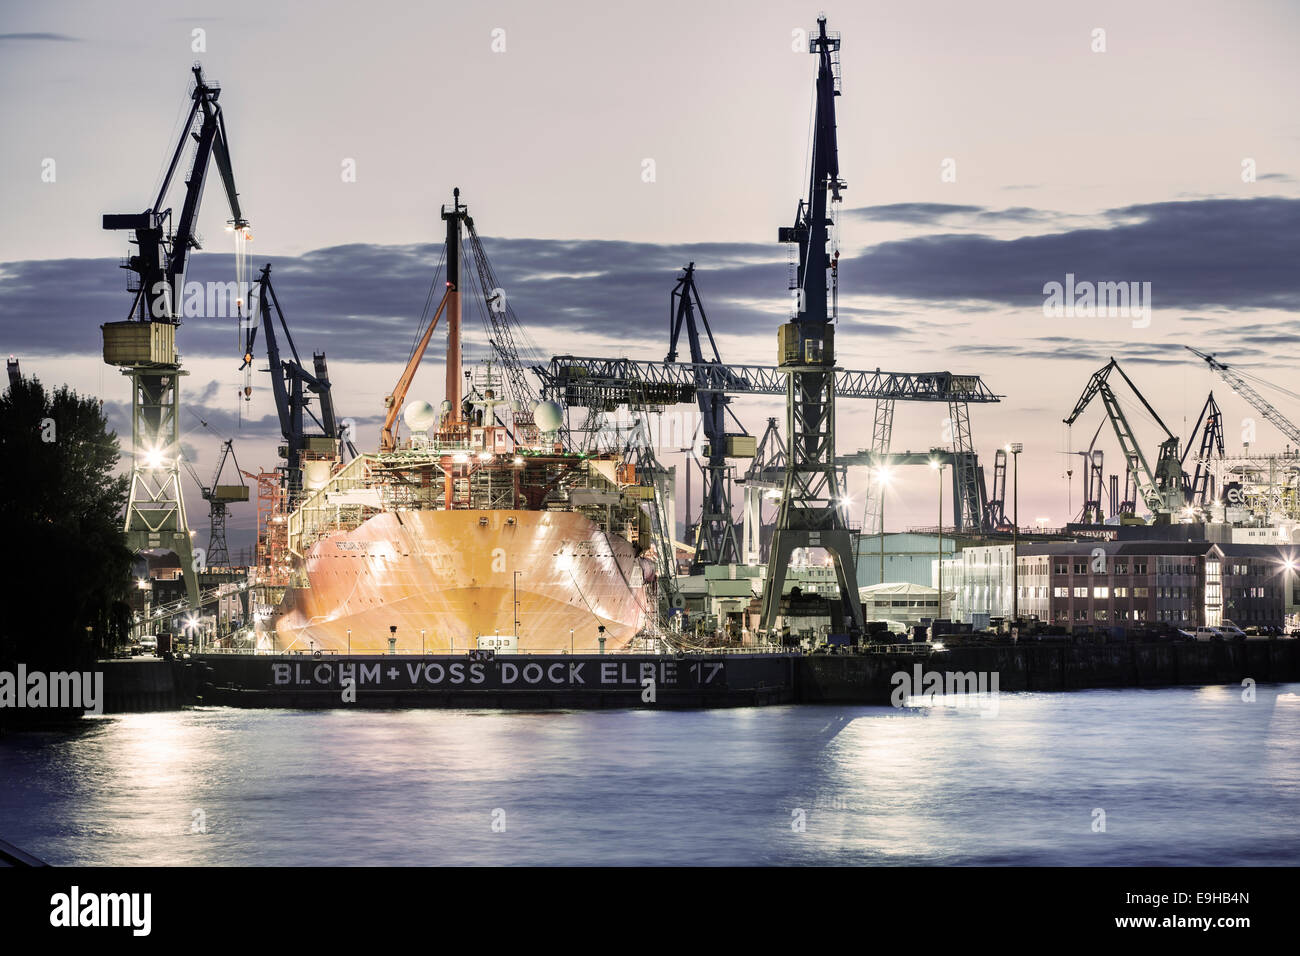 Container ship in a dry dock in the port, Hamburg, Hamburg, Germany Stock Photo